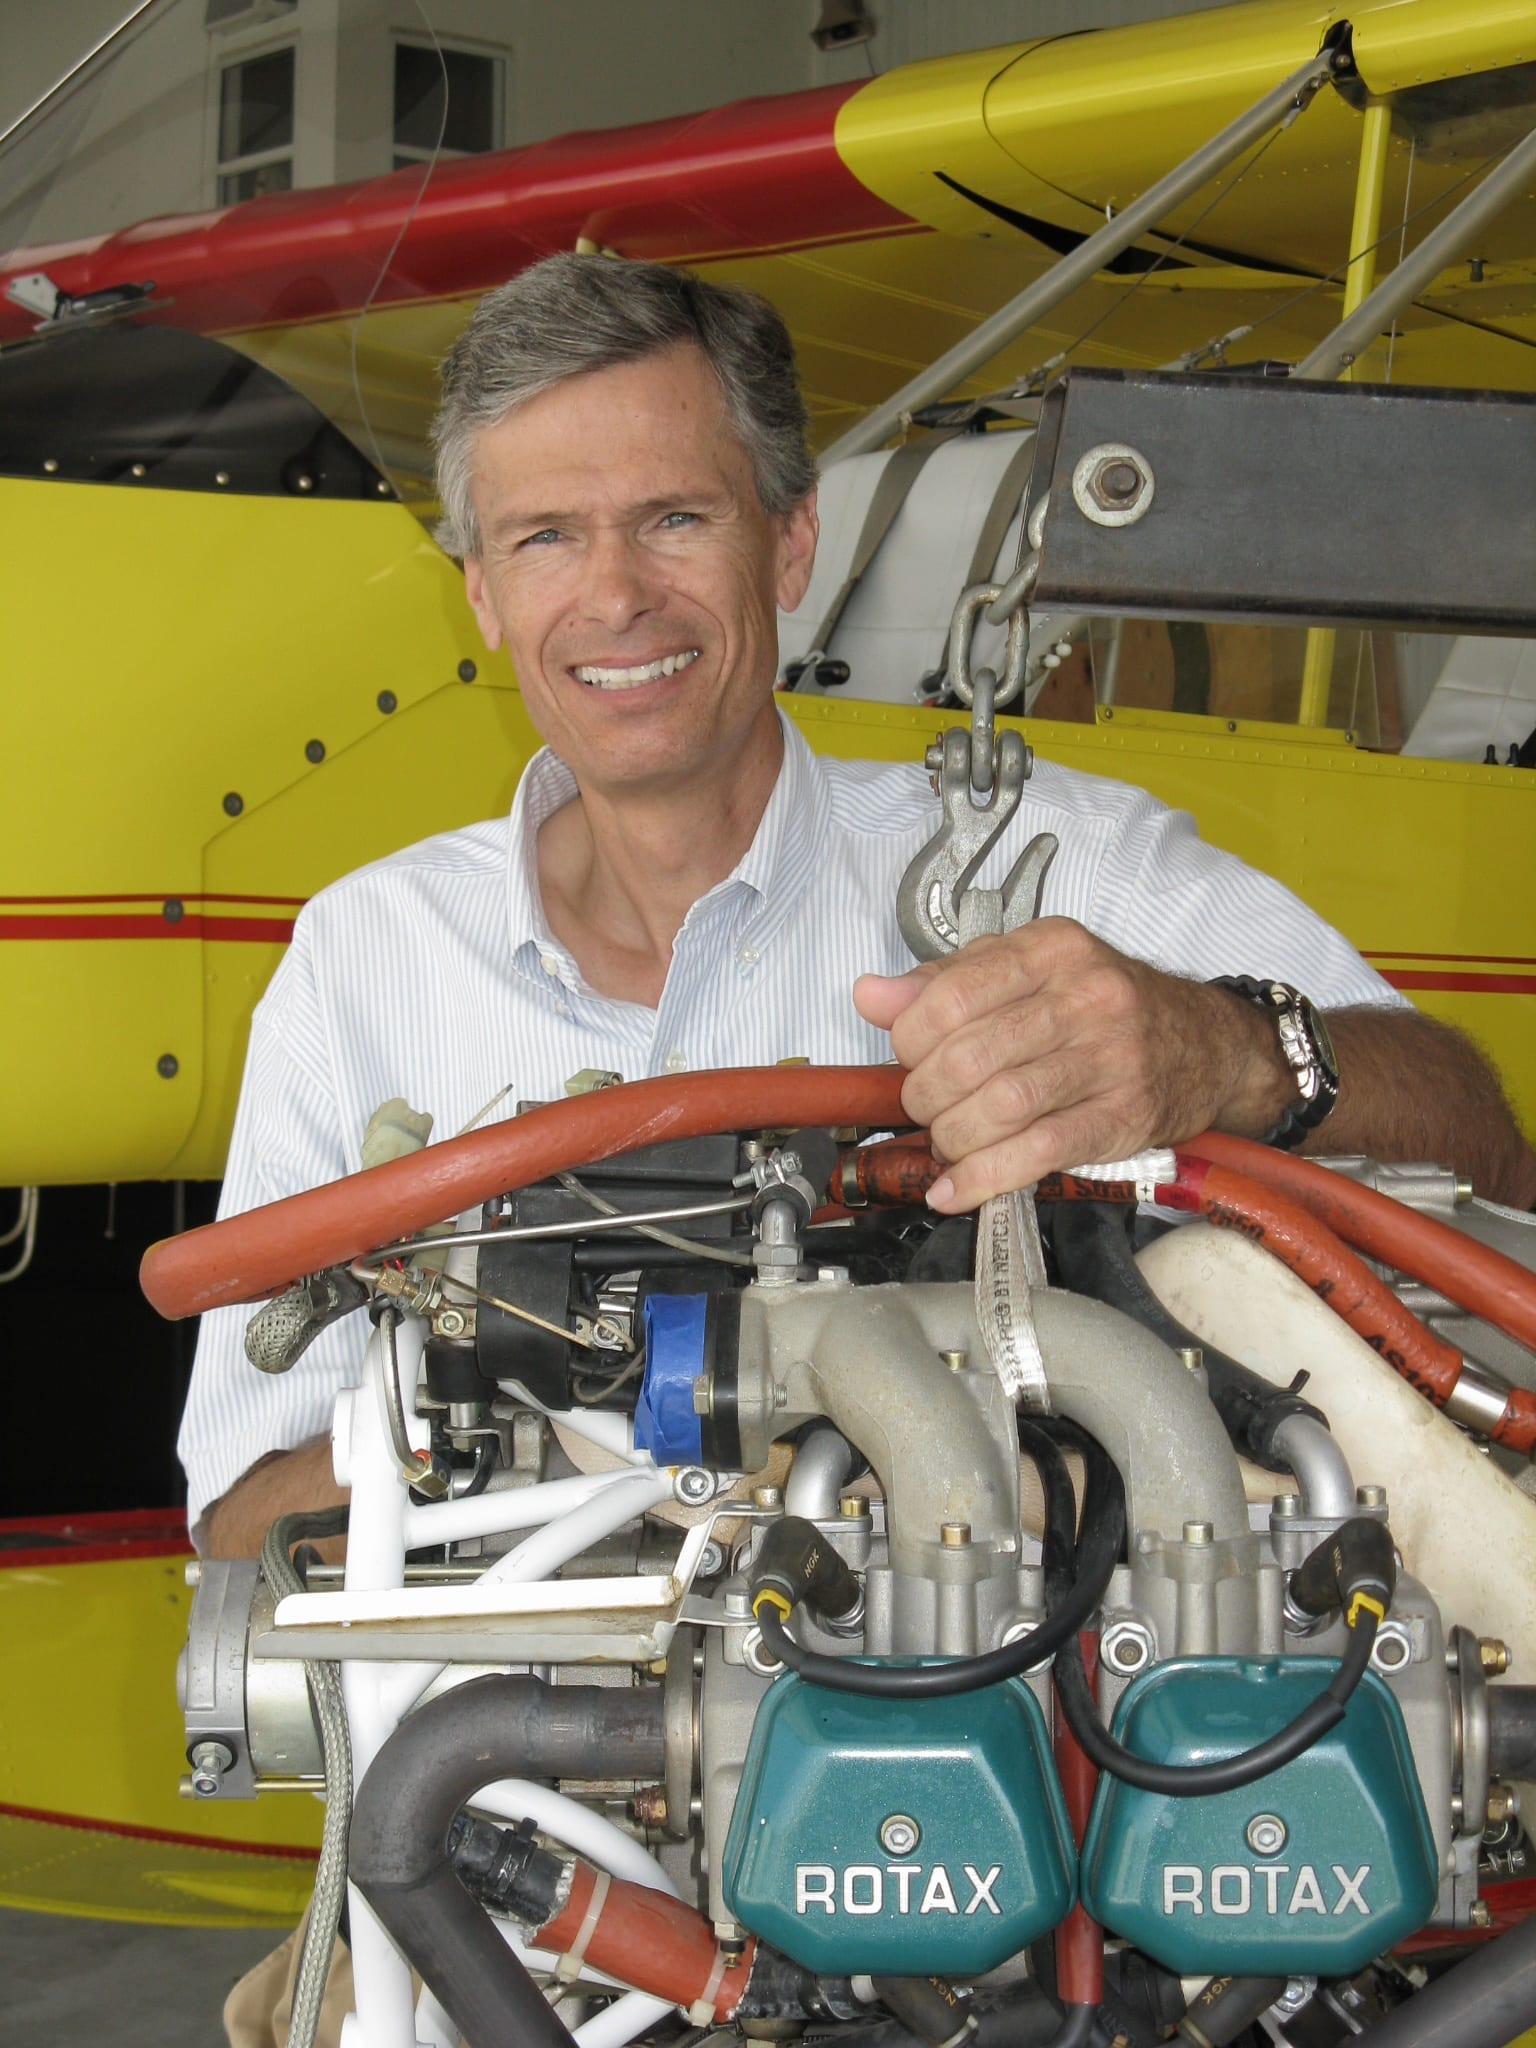 Rotax expert to present forums at Arlington and Oshkosh